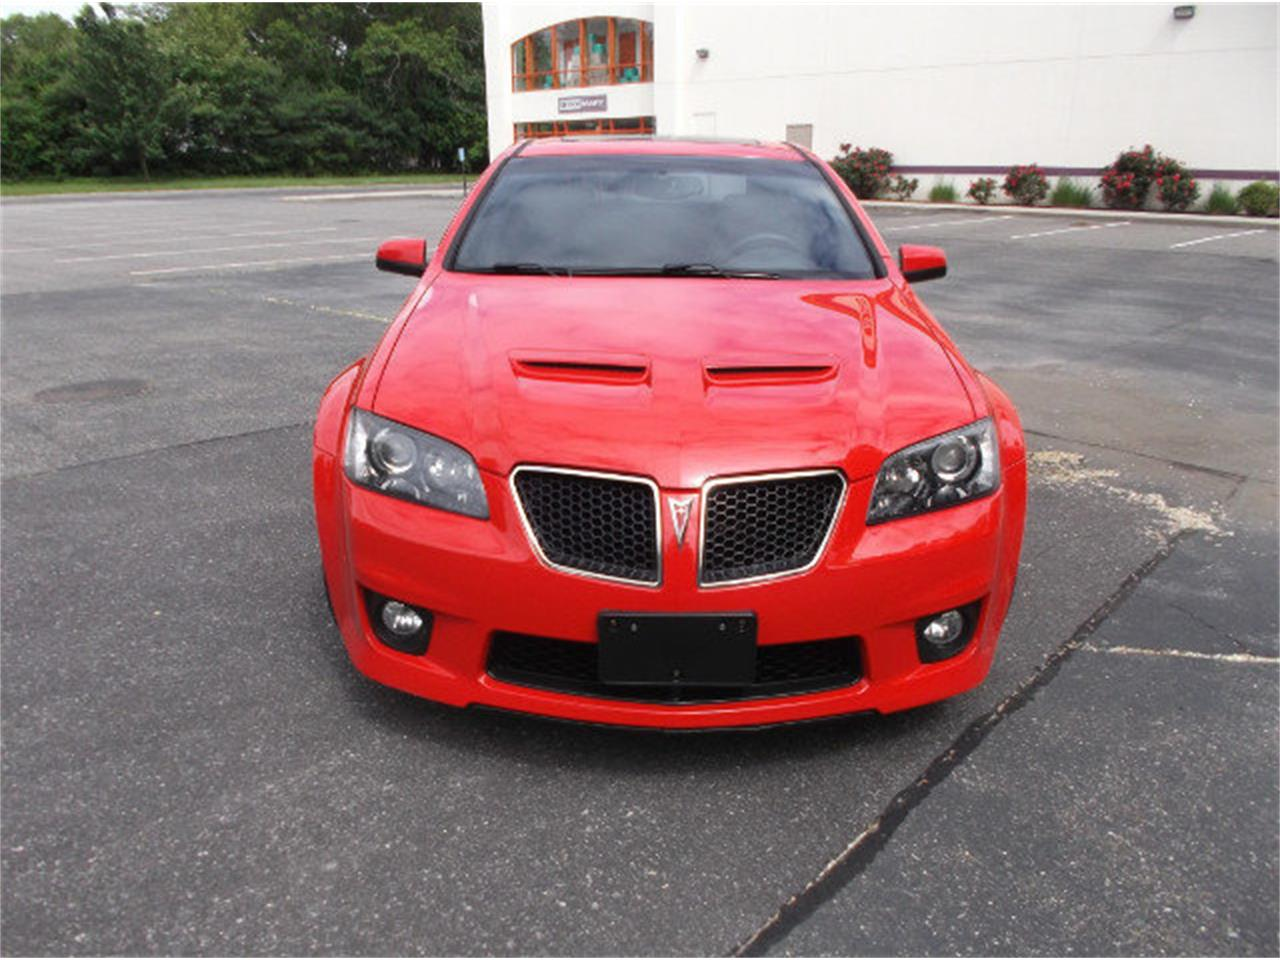 Large Picture of 2009 Pontiac G8 located in West Babylon New York - $26,995.00 Offered by Hollywood Motors - LDI6